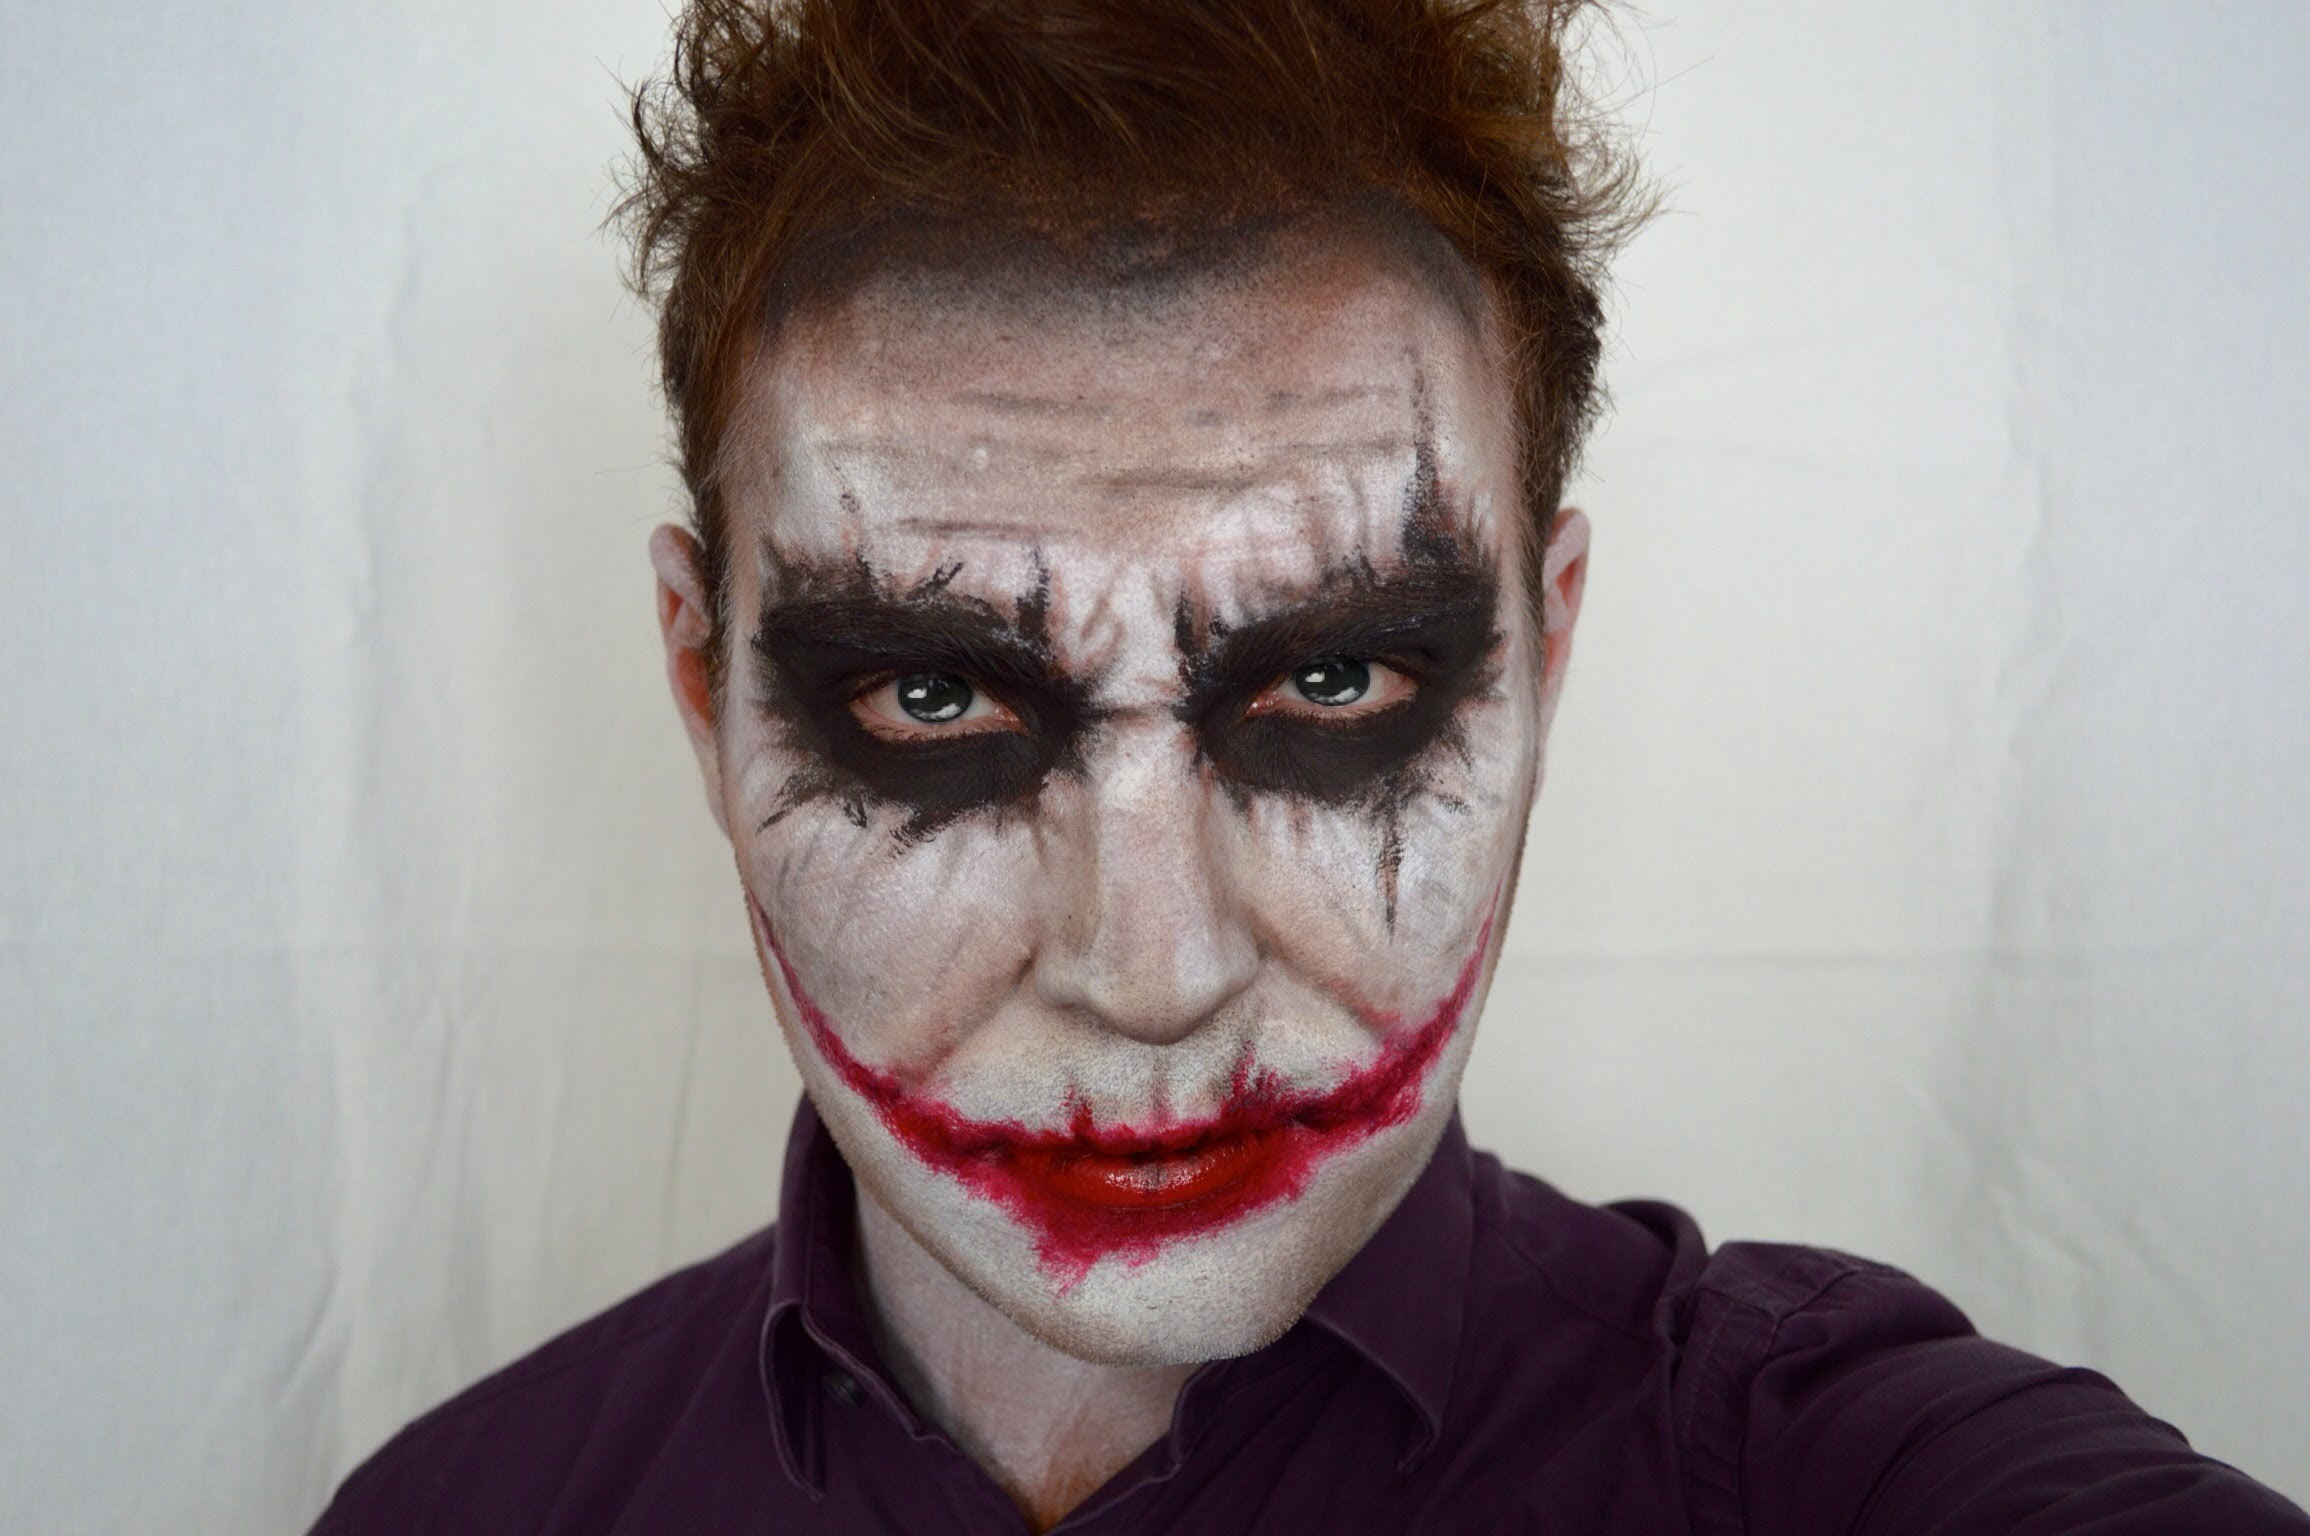 Joker DIY makeup